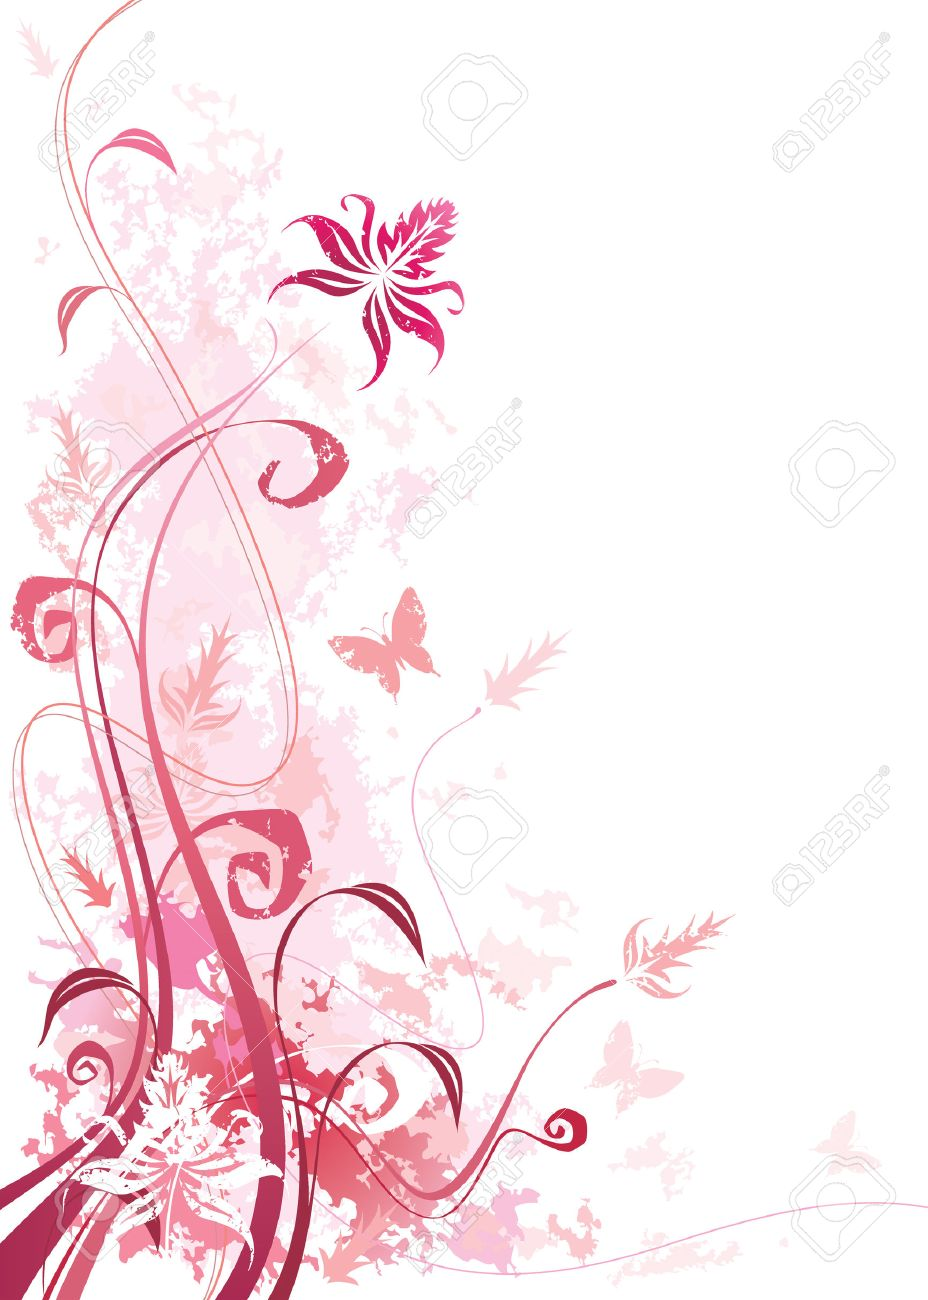 Pink color floral with grunge effects, vector illustration layered file. Stock Vector - 3327858